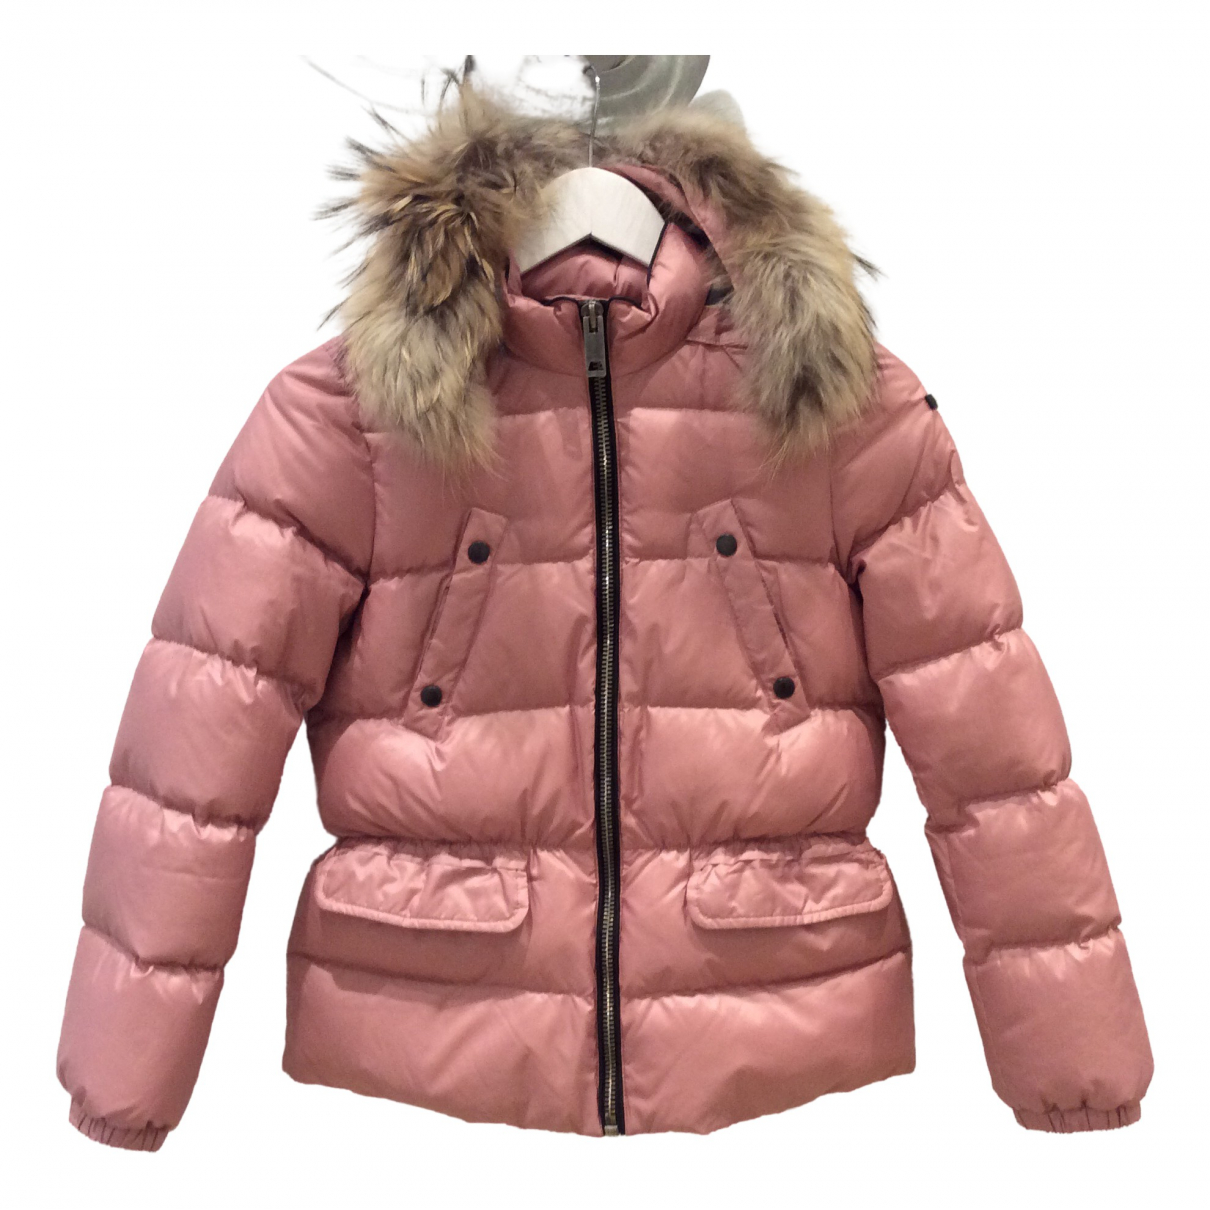 Burberry \N Jacke, Maentel in  Rosa Polyester